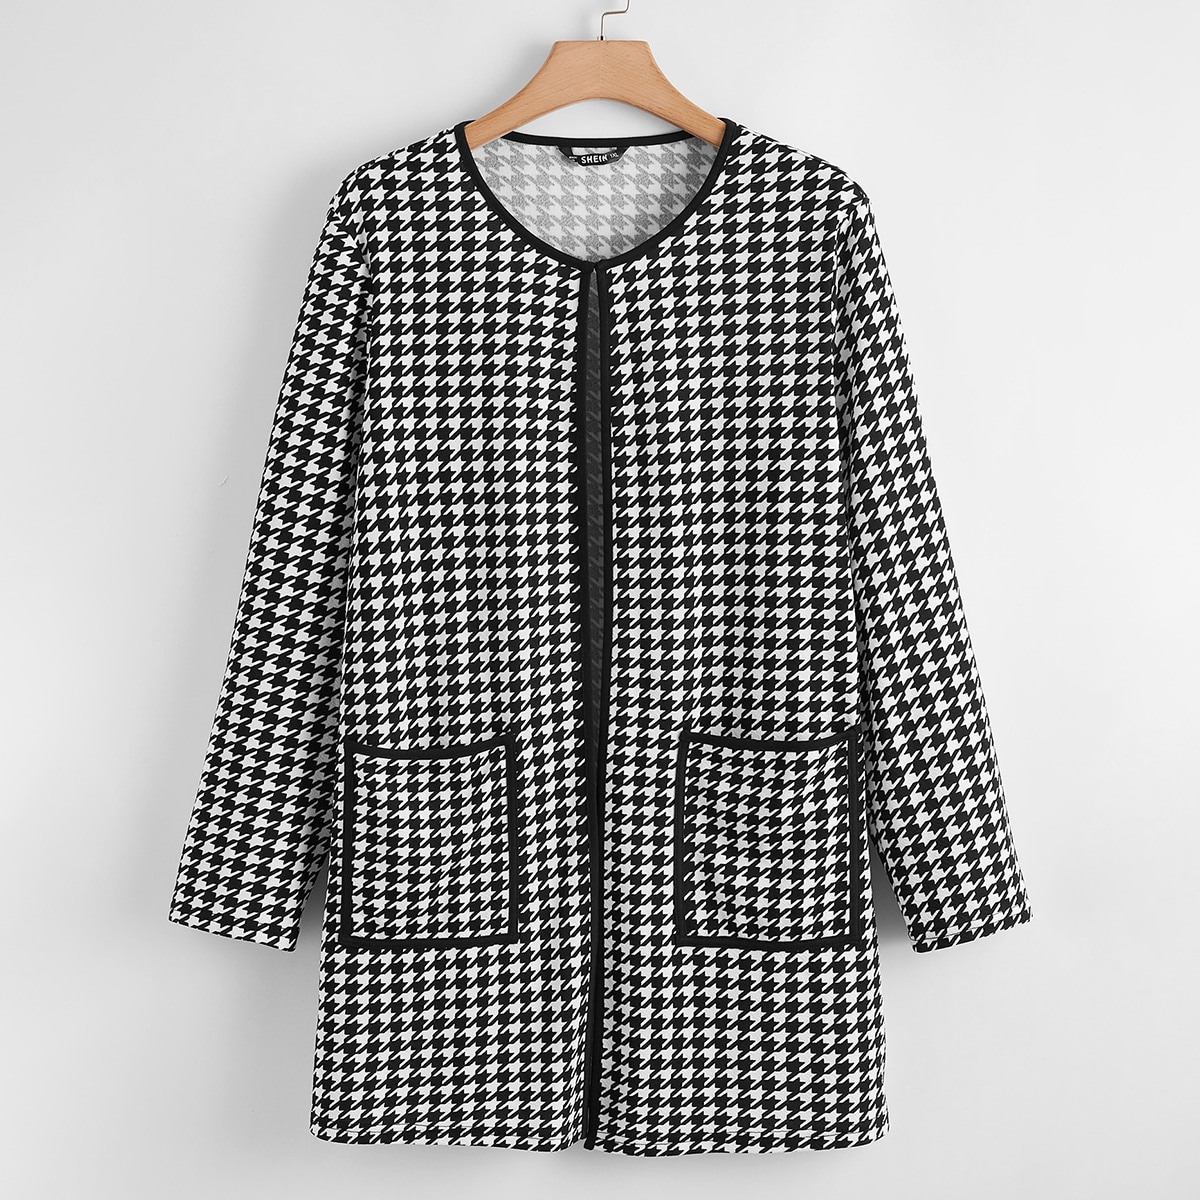 shein Casual Houndstooth Grote maat: mantel Zak